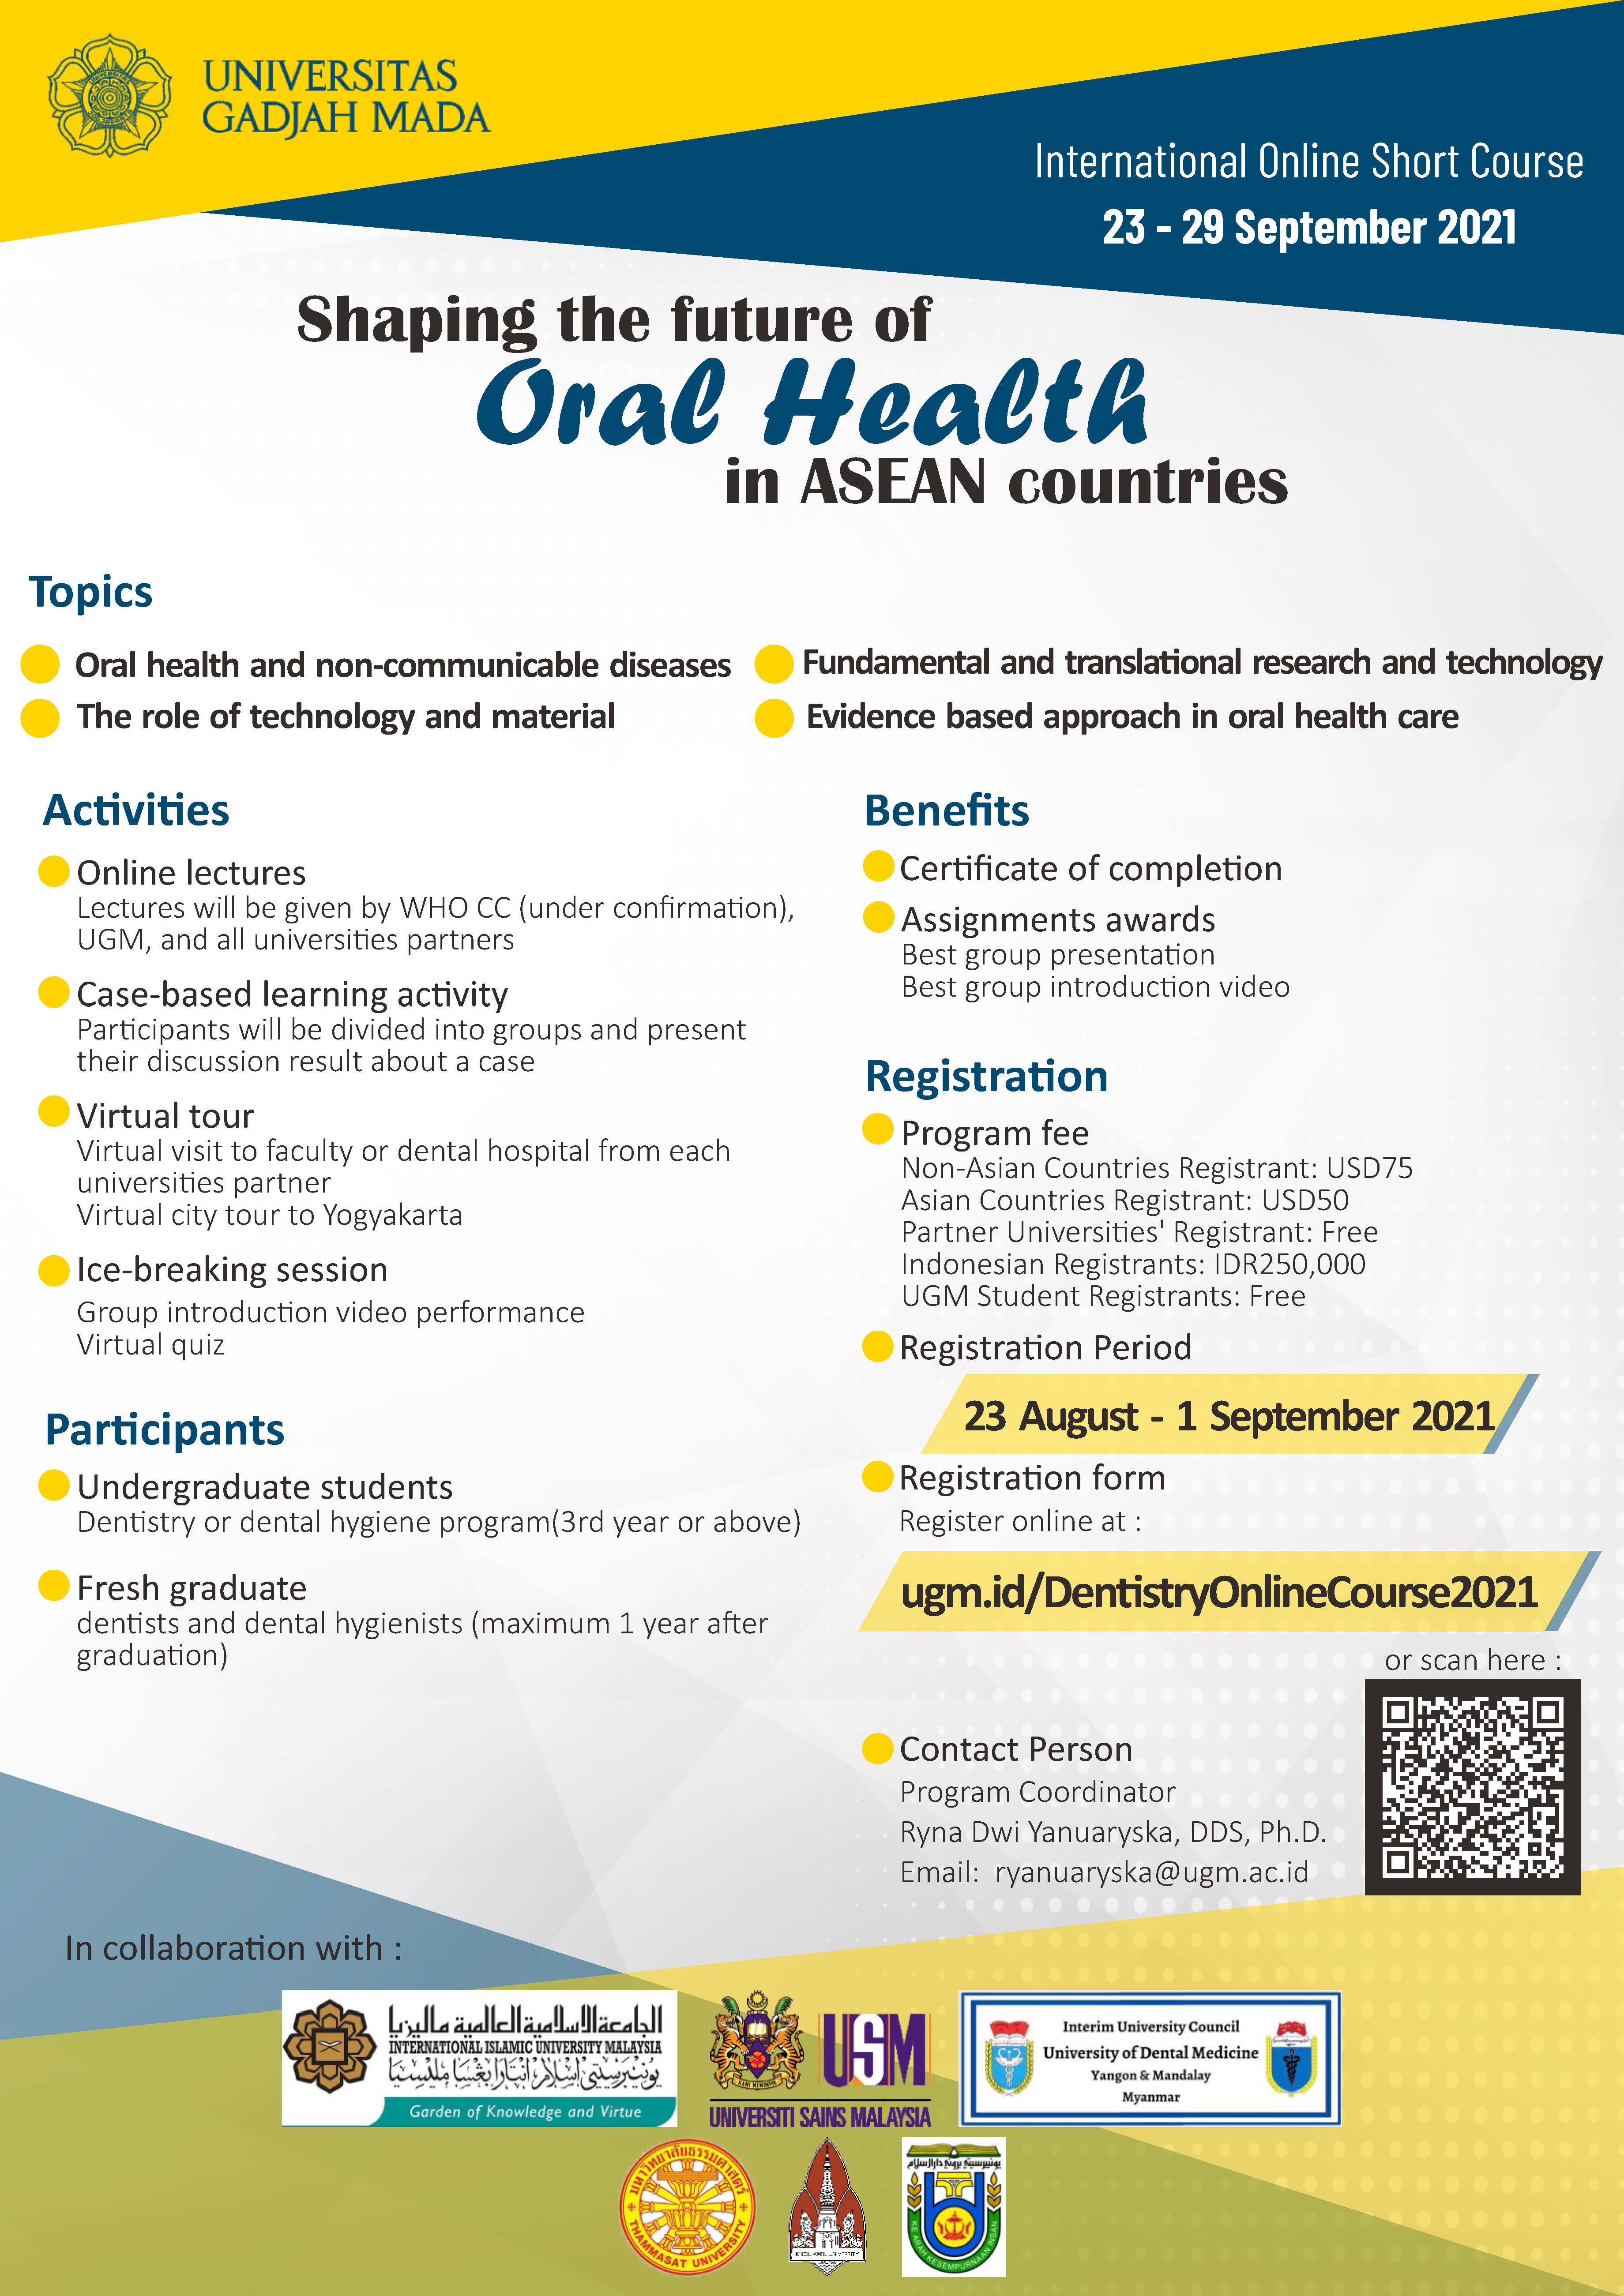 International Online Course: Shaping the Future of Oral Health in ASEAN Countries